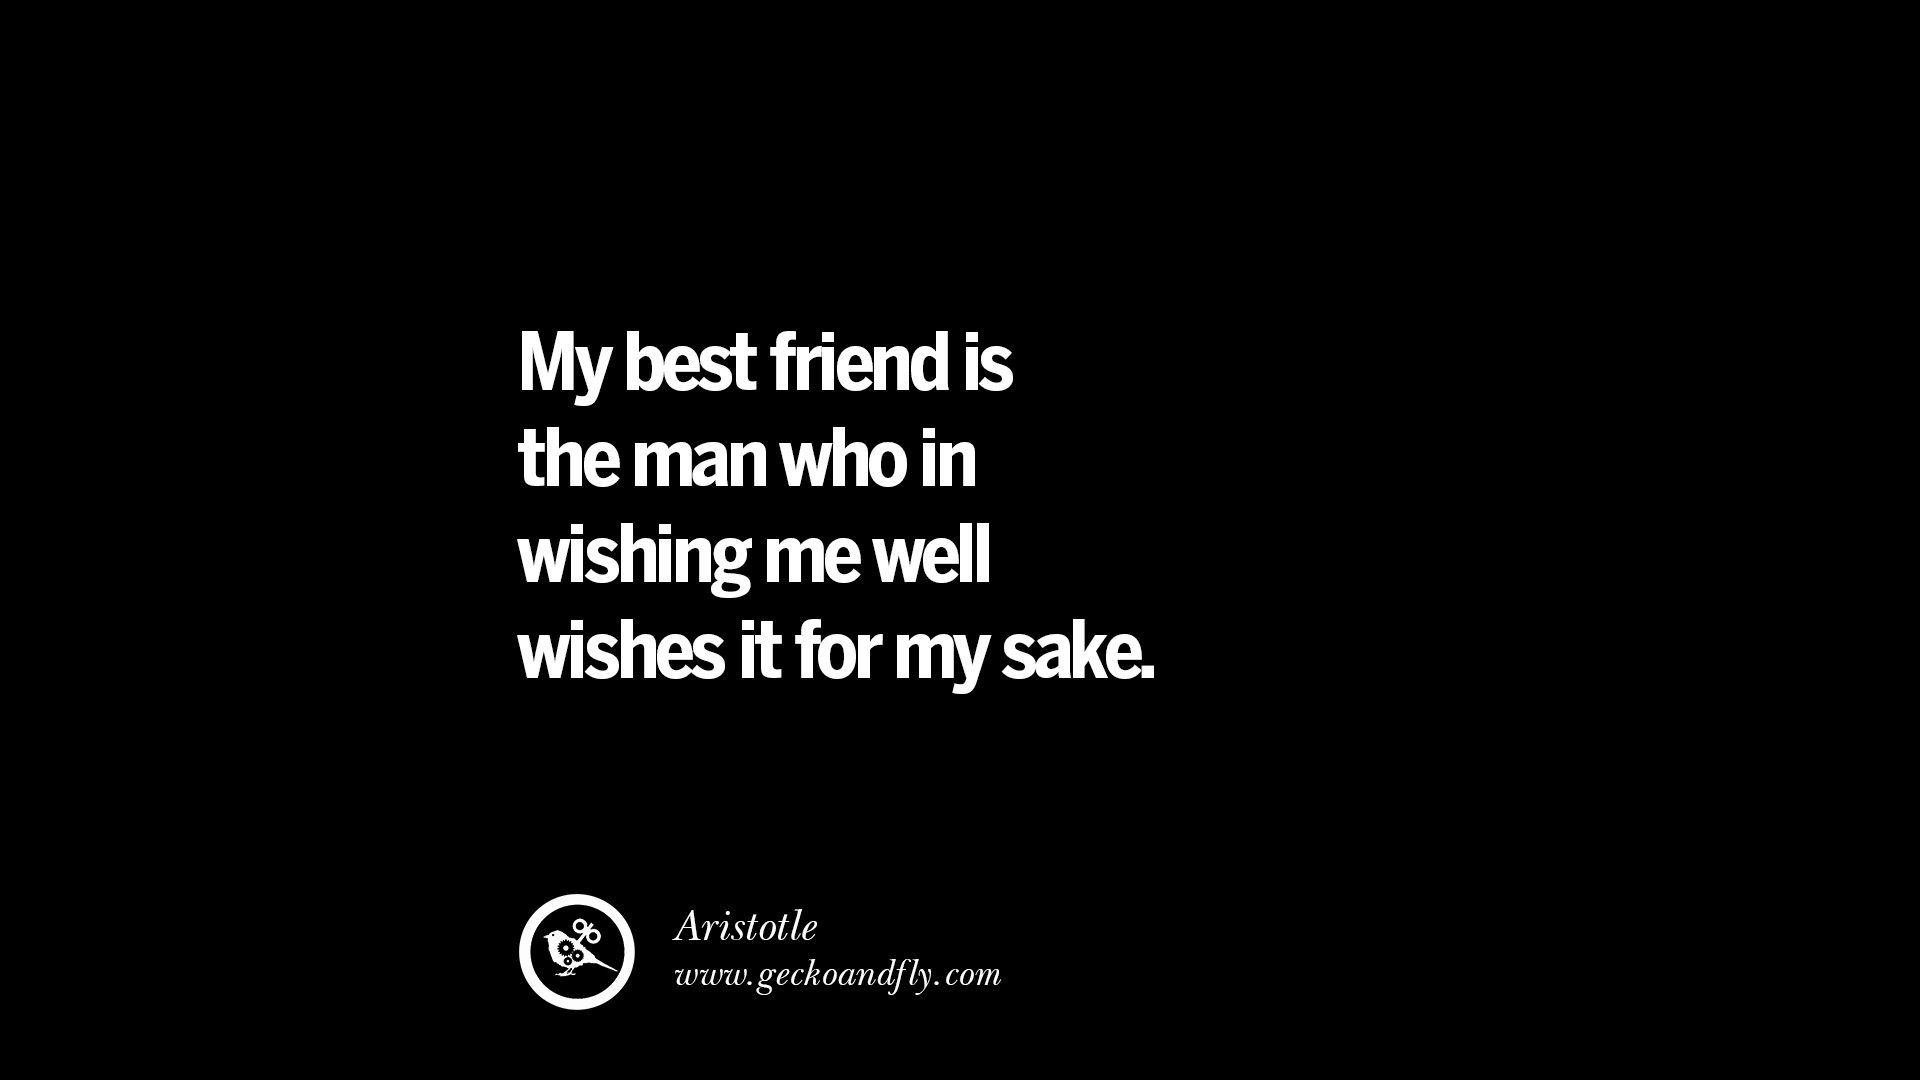 Quotes On Friendship 20 Amazing Quotes About Friendship Love And Friends  Geckoandfly 2018